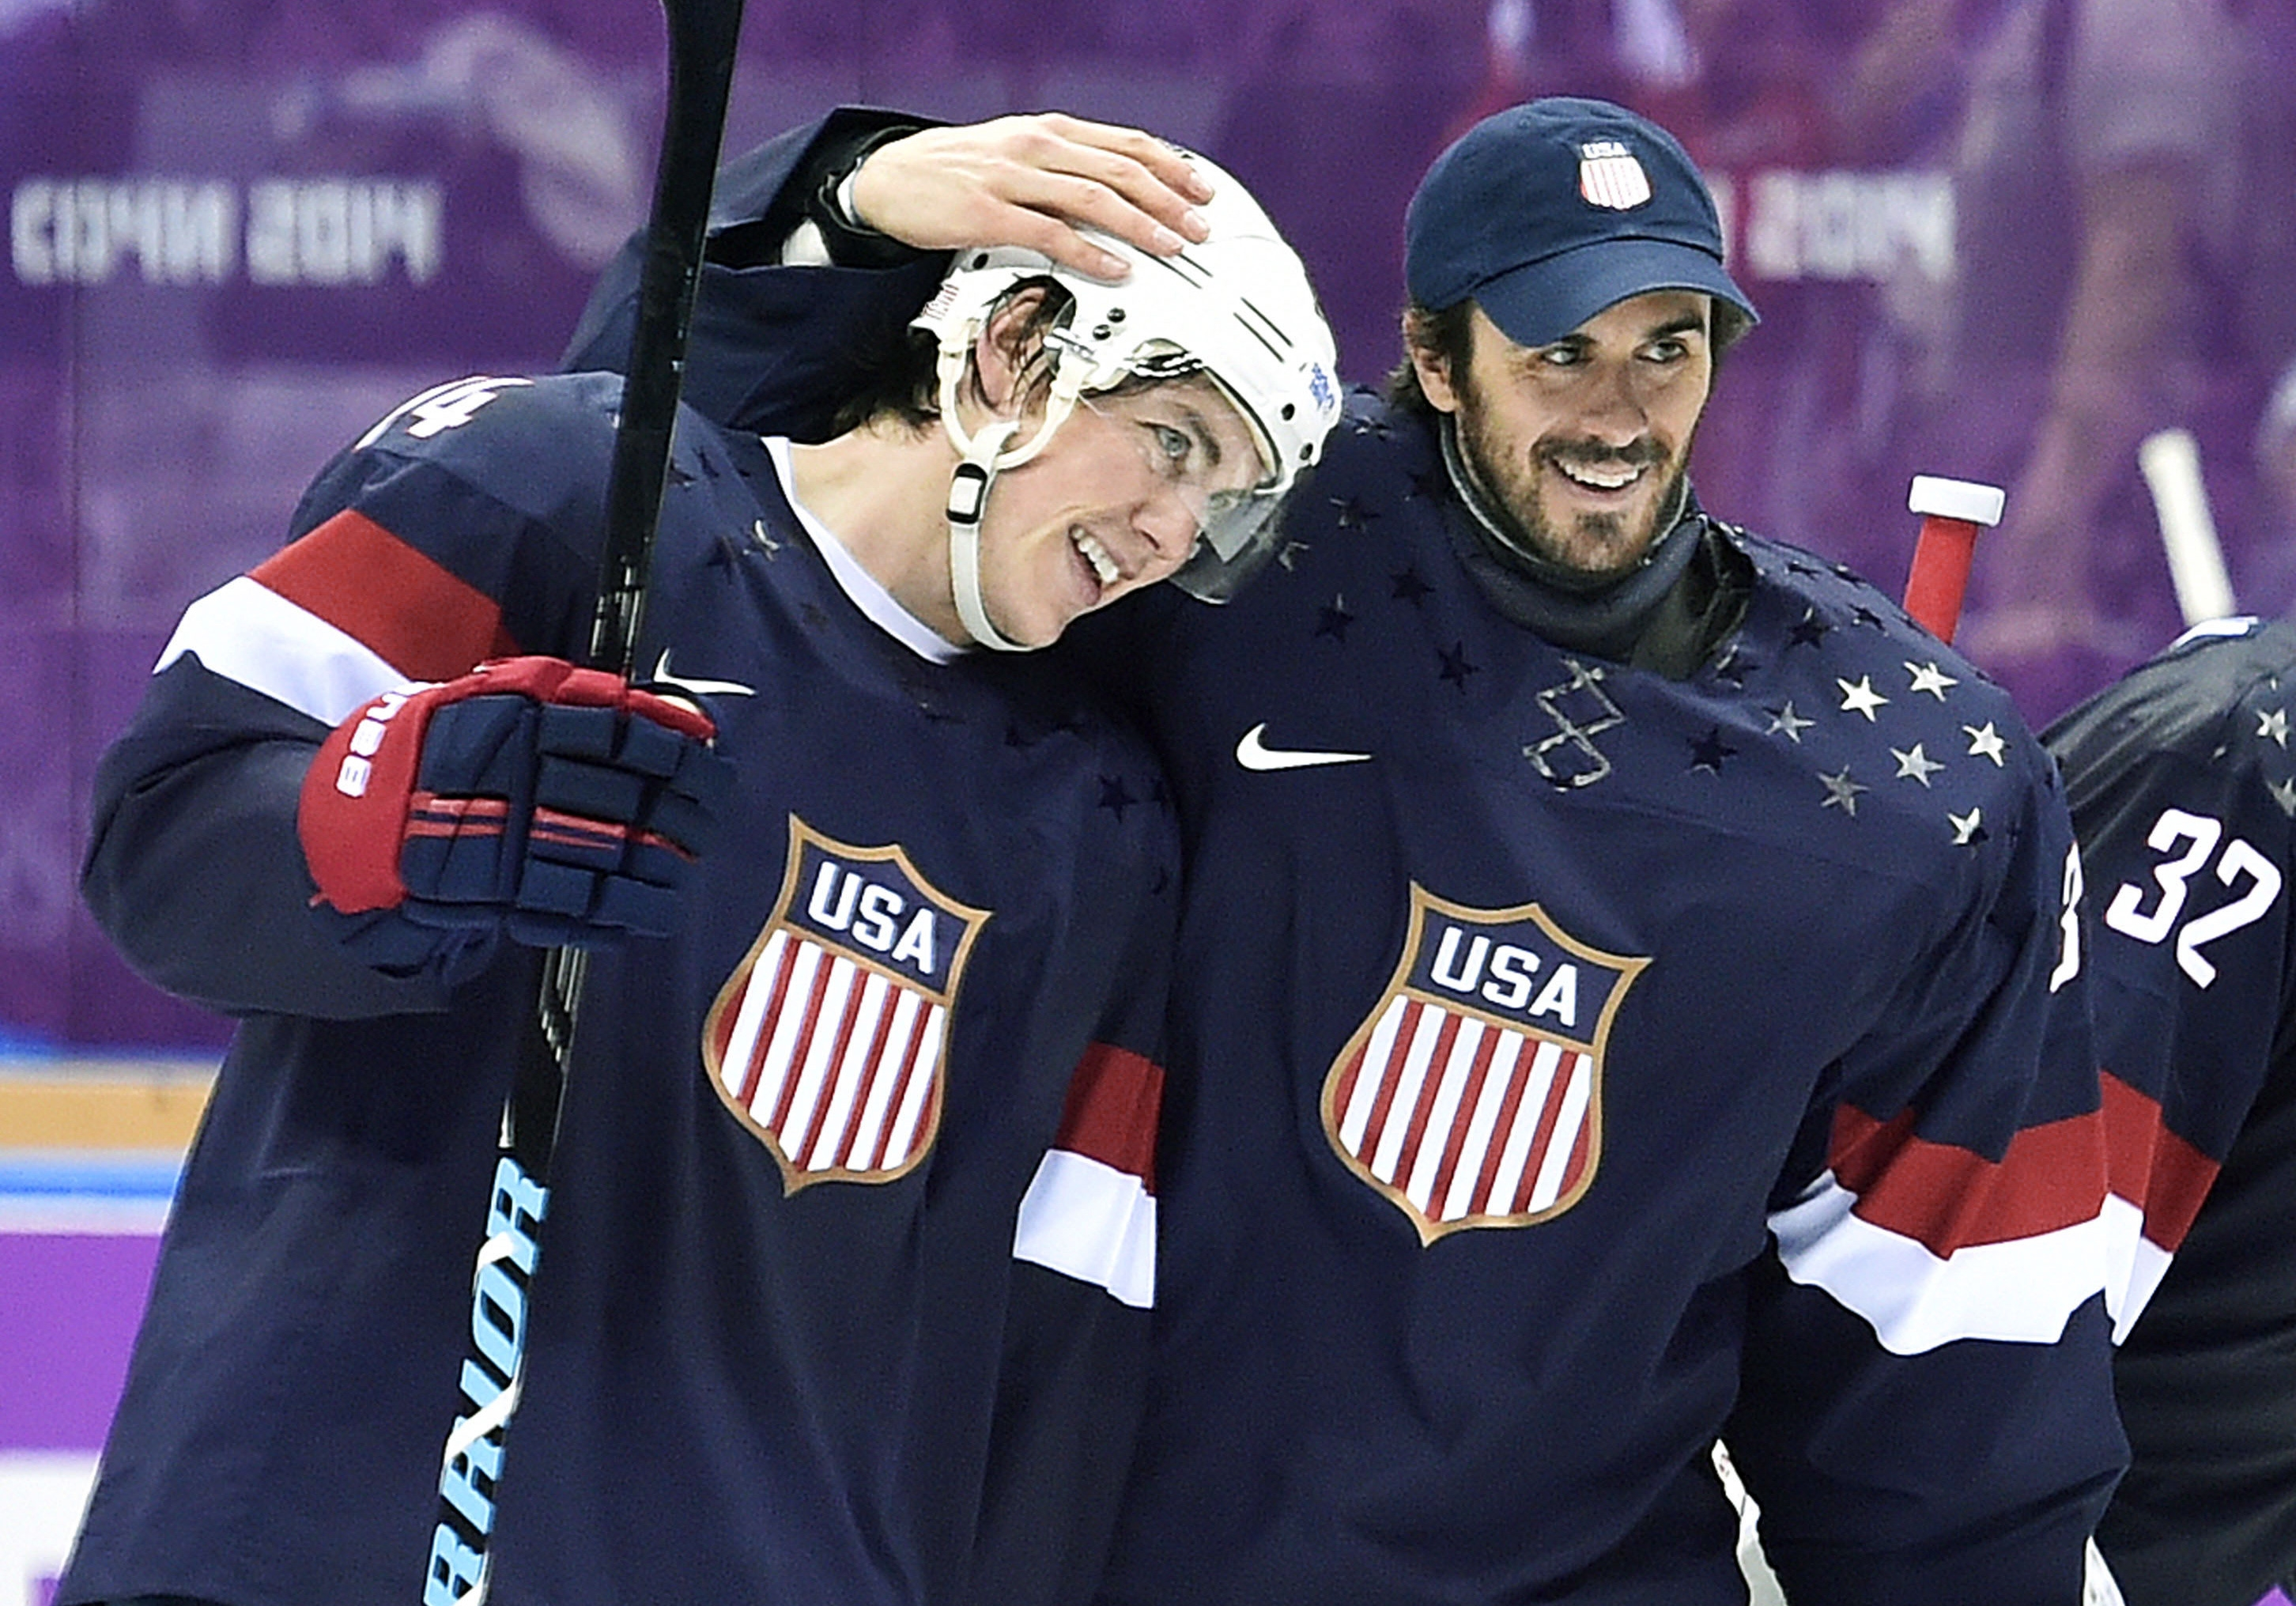 T.J. Oshie, left, is congratulated by Ryan Miller after Oshie's shootout winner for the U.S. against Russia last week at the Olympics.